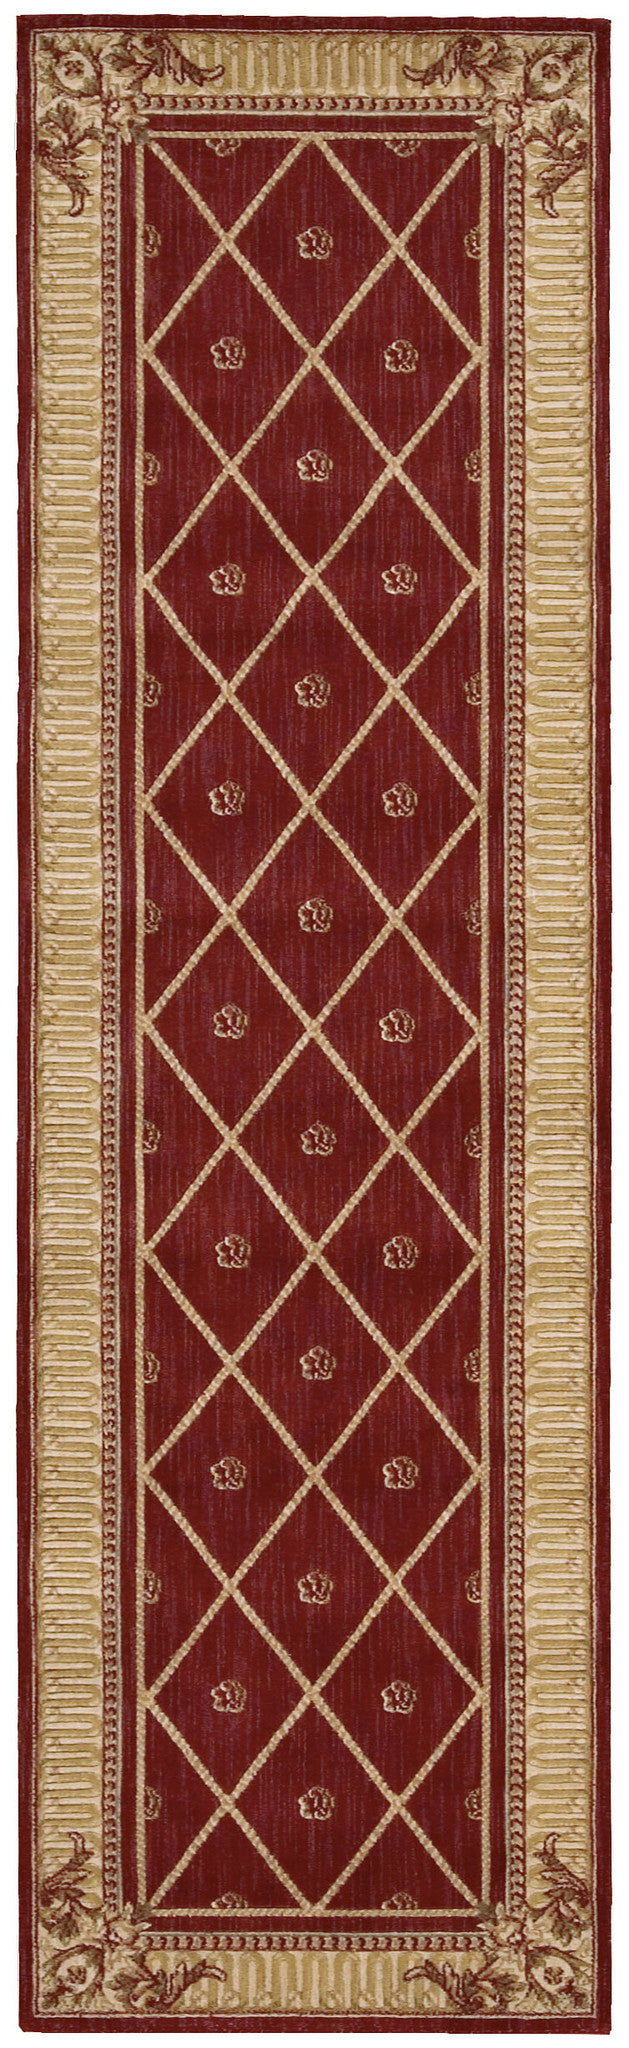 Nourison Ashton House Sienna Area Rug AS03 SIE